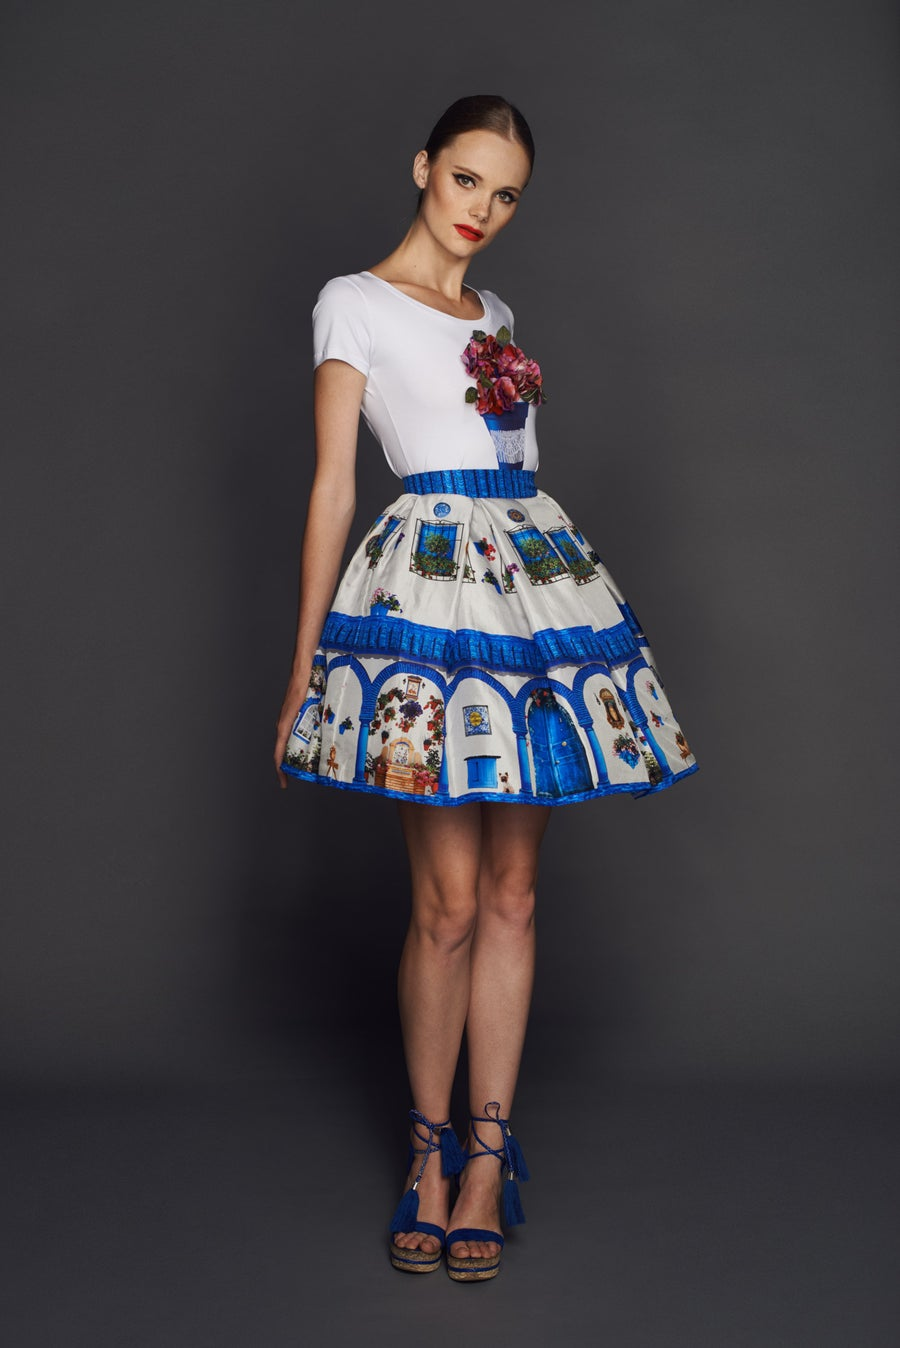 Image of Windows skirt from Andalusia collection